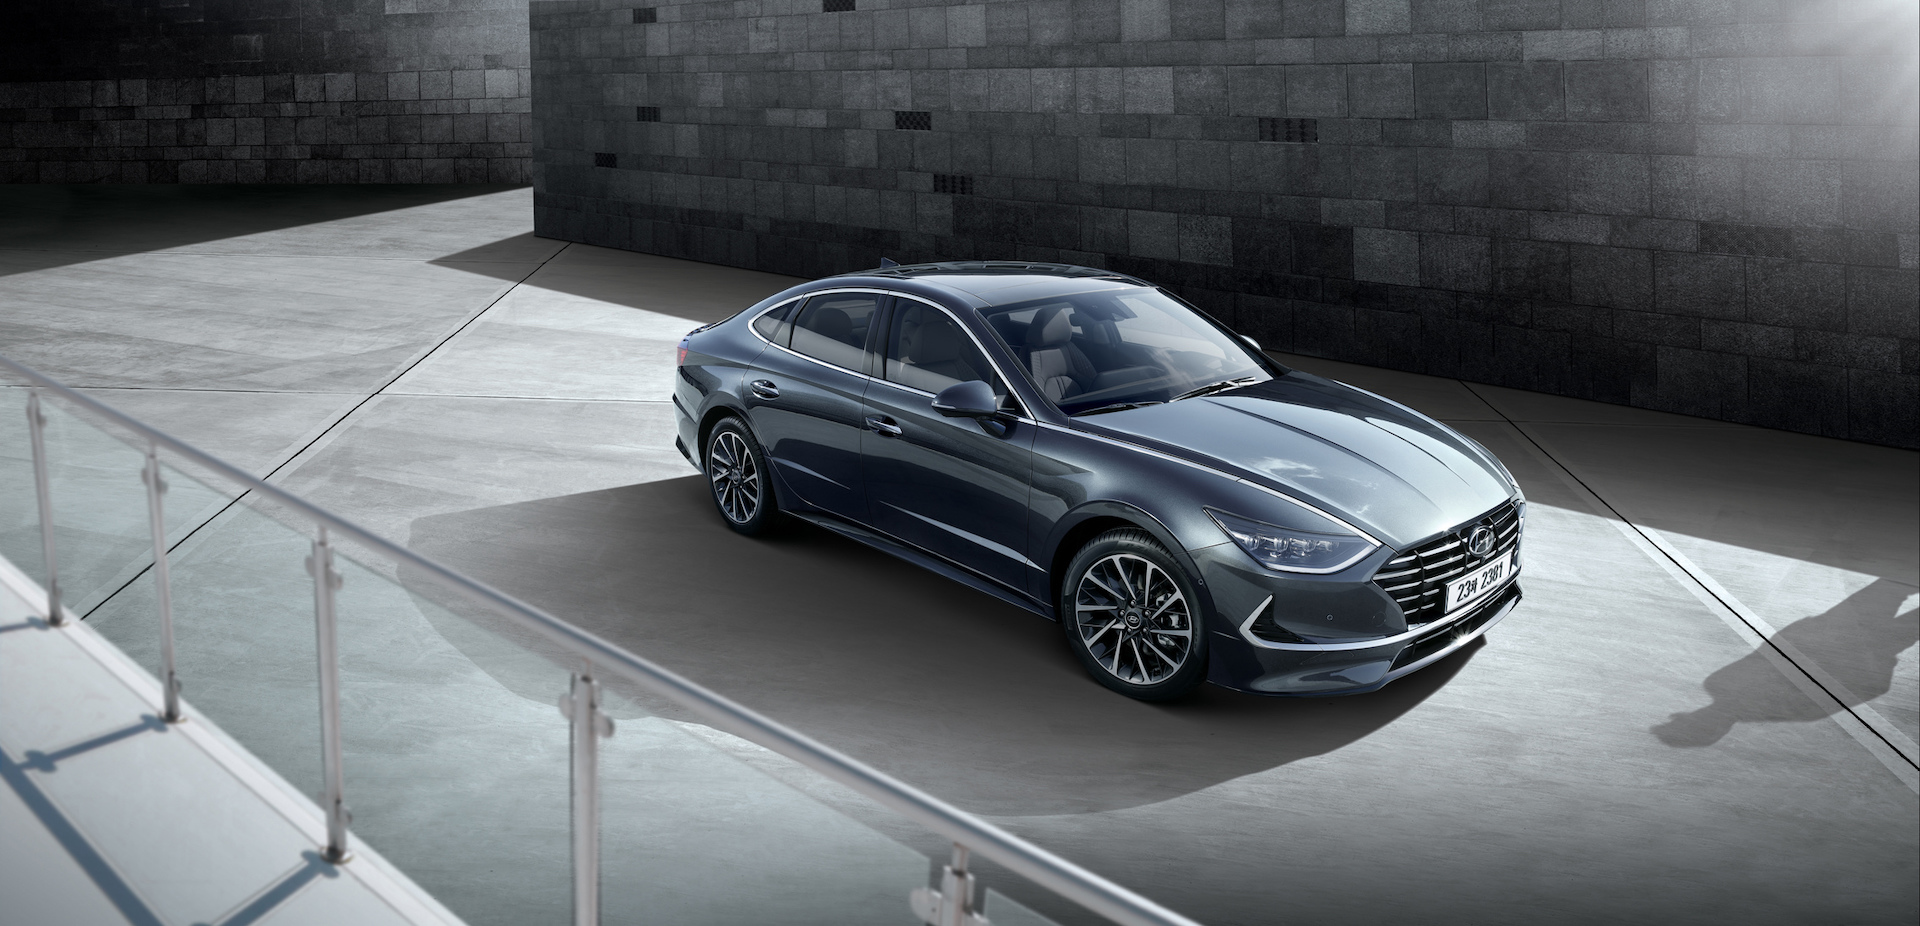 Specification, Price & Review: 2020 Hyundai Sonata preview